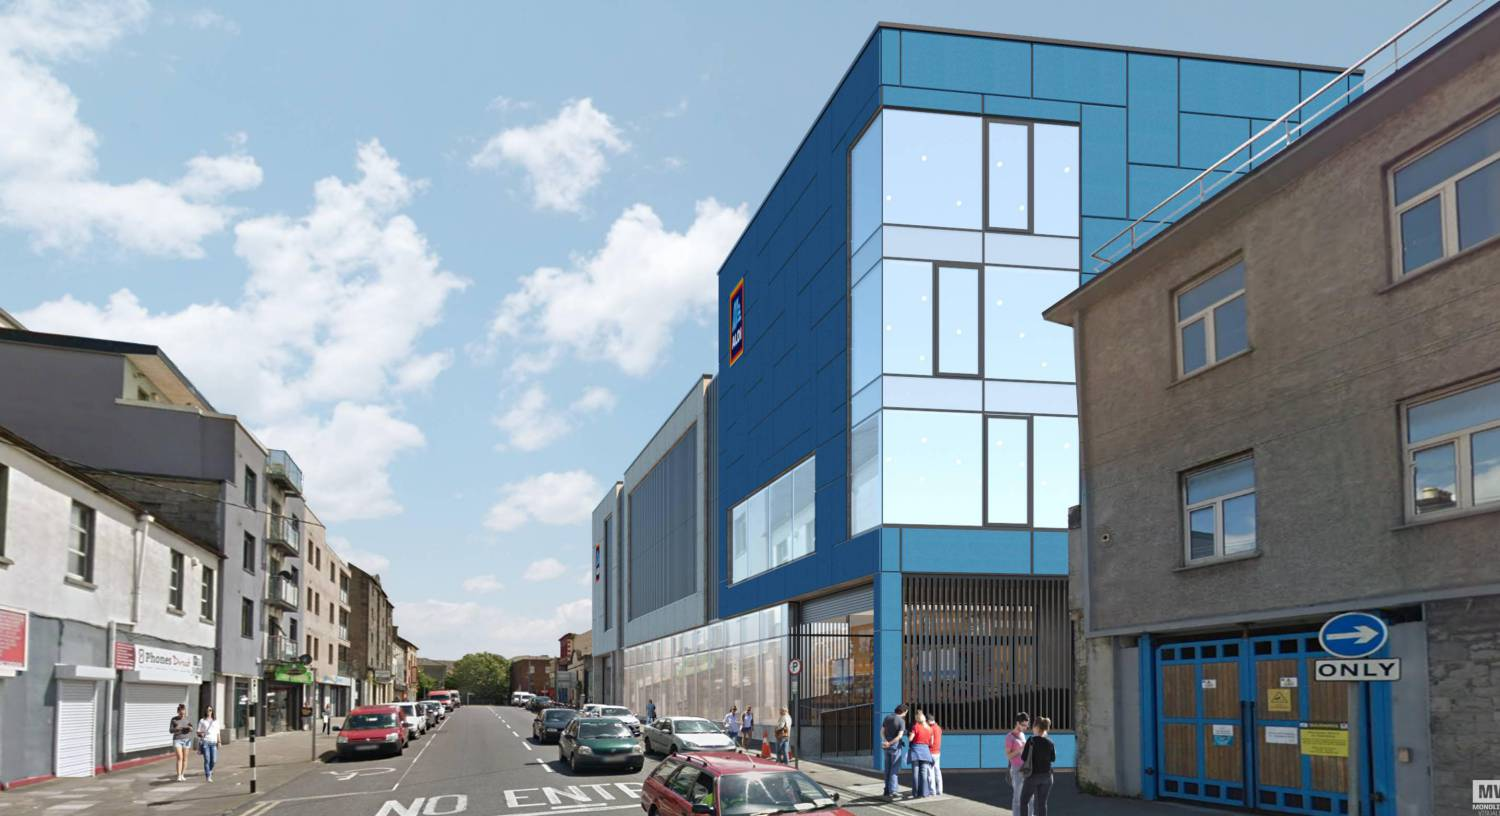 aldi limerick : Aldi has submitted a planning application for its Project Fresh store format on Roches Street as part of its €160m Irish store network investment programme.